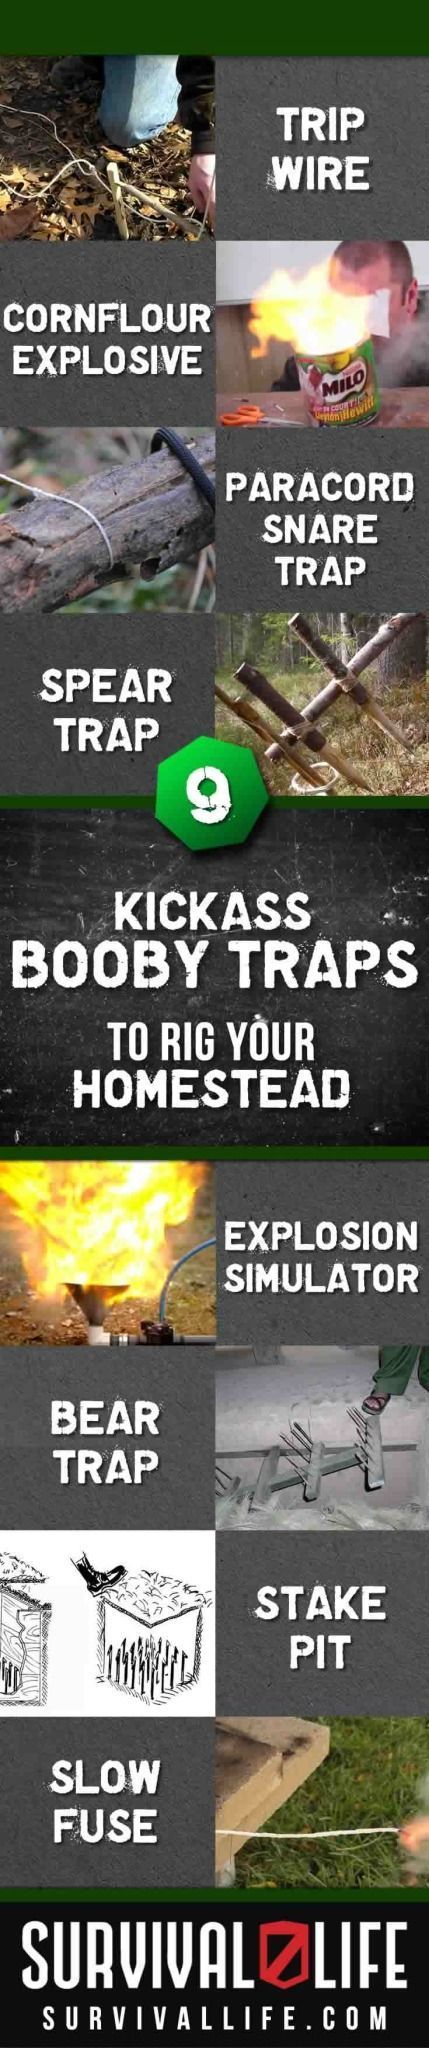 Booby Traps for DIY Home Security   Emergency Preparedness and DIY Home Defense Ideas and Projects By Survival Life http://survivallife.com/2014/03/31/booby-traps-diy-home-security/